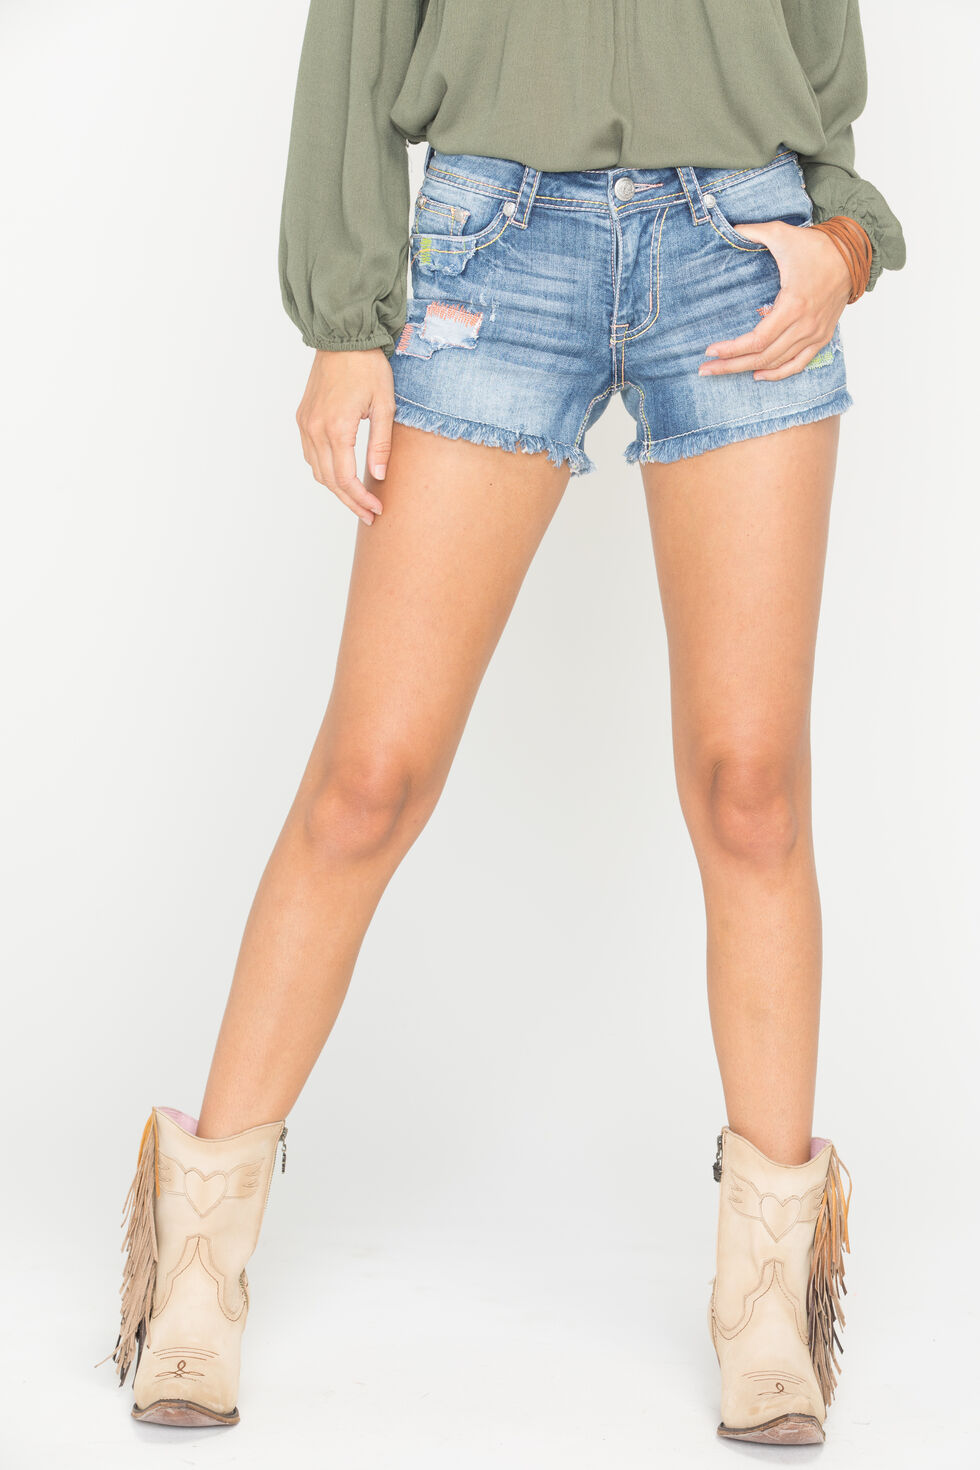 Grace in LA Patchwork Cutoff Shorts, Denim, hi-res